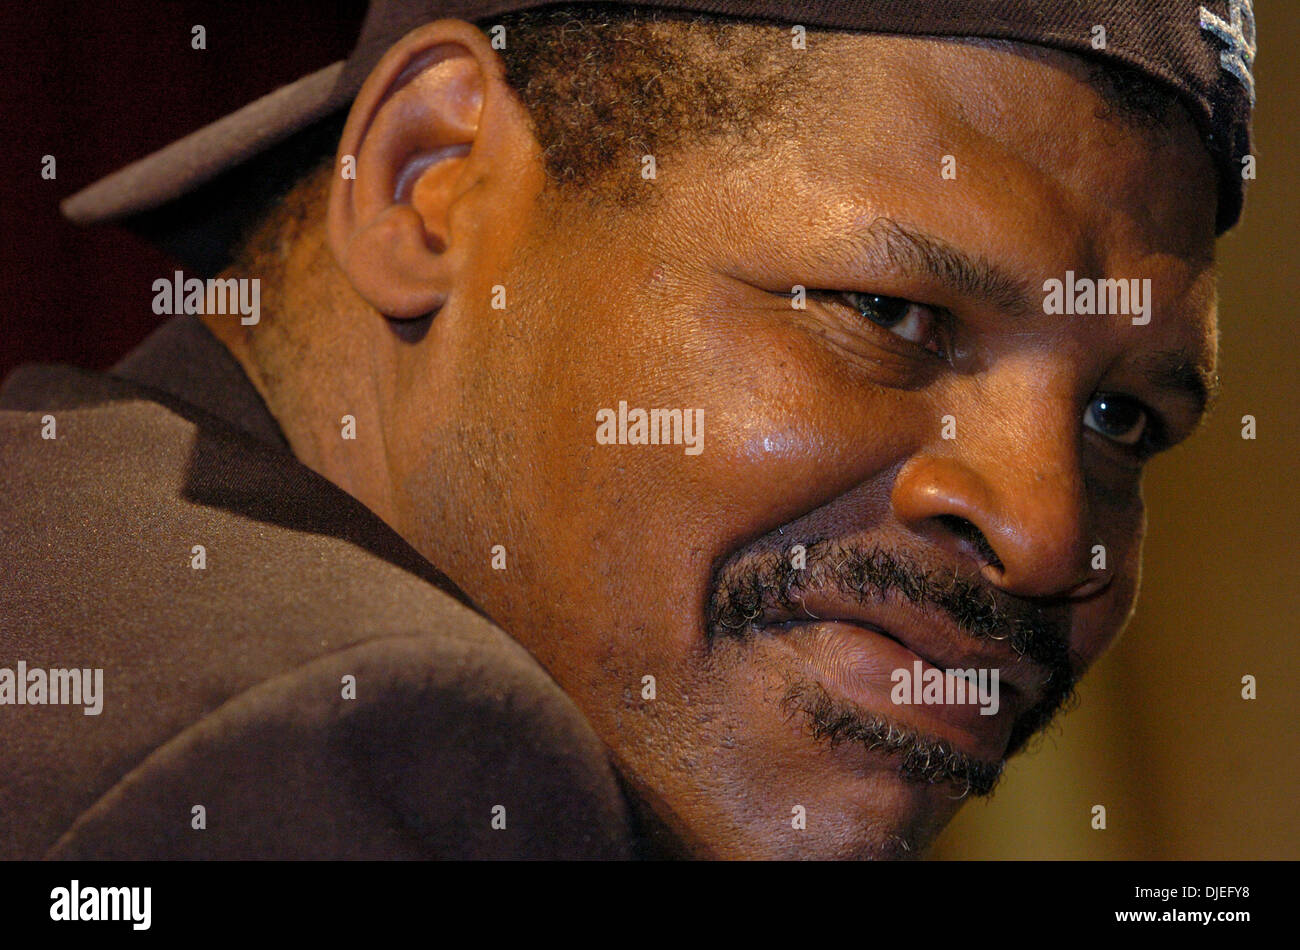 Oct 16, 2004; Commerce, CA, USA; Former Heavyweight Champion LEON SPINKS at The 25th Annual World Boxing Hall of Fame Banquet held at The Commerce Casino. - Stock Image